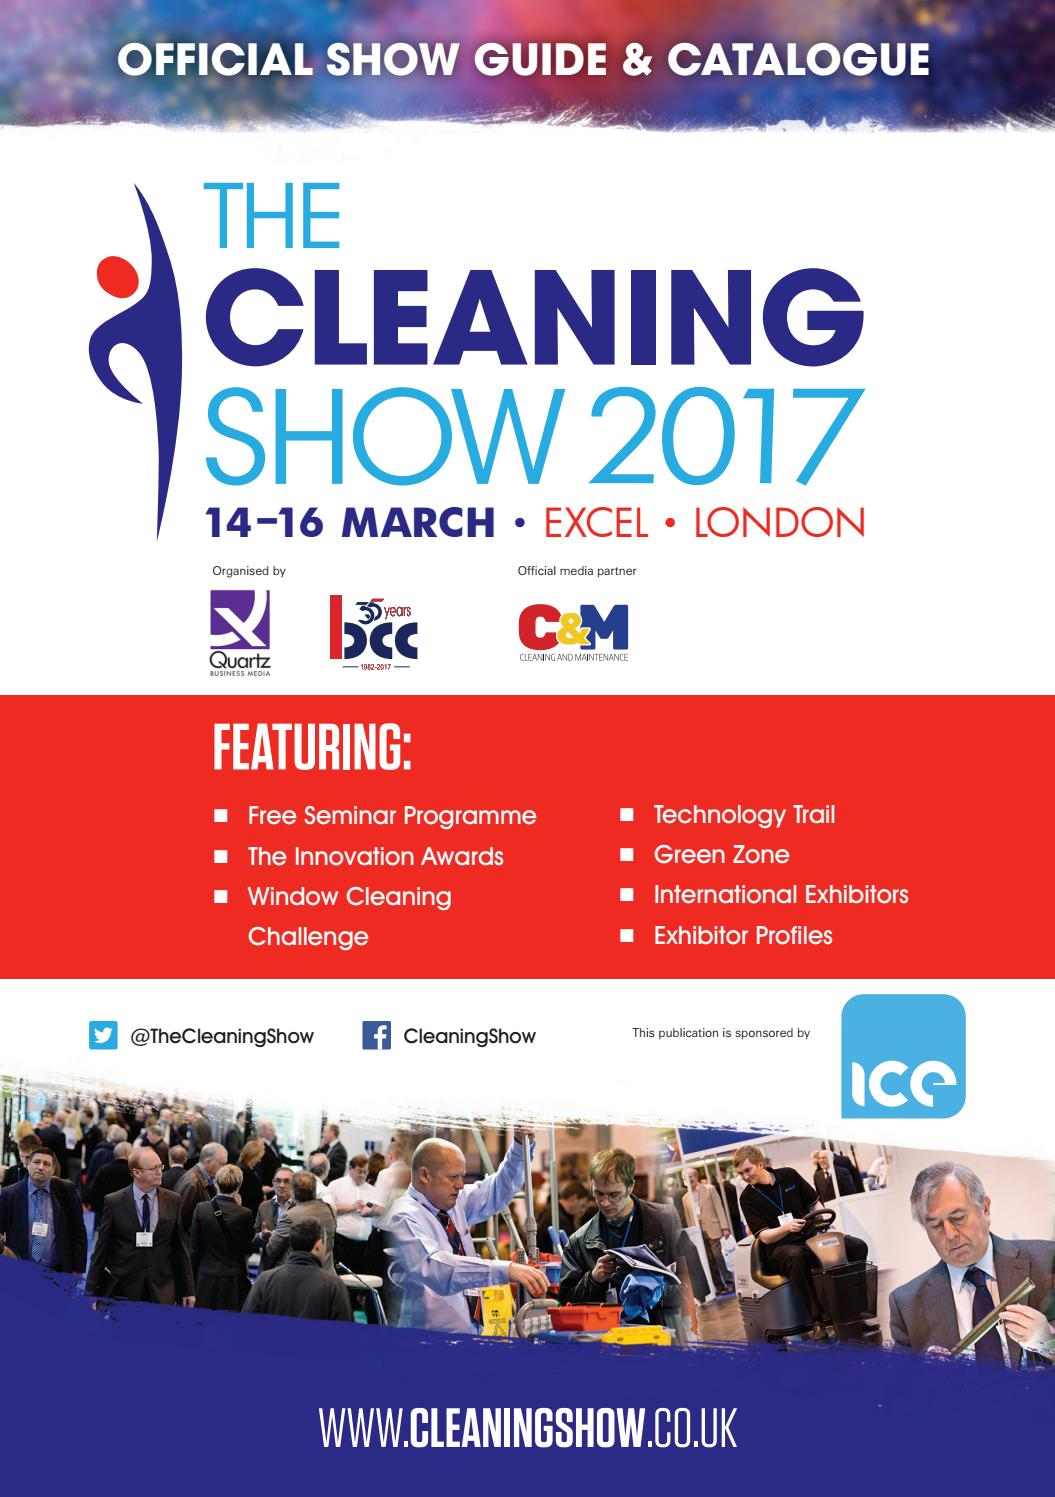 The Cleaning Show Official Show Guide 2017 by Quartz Business Media - issuu